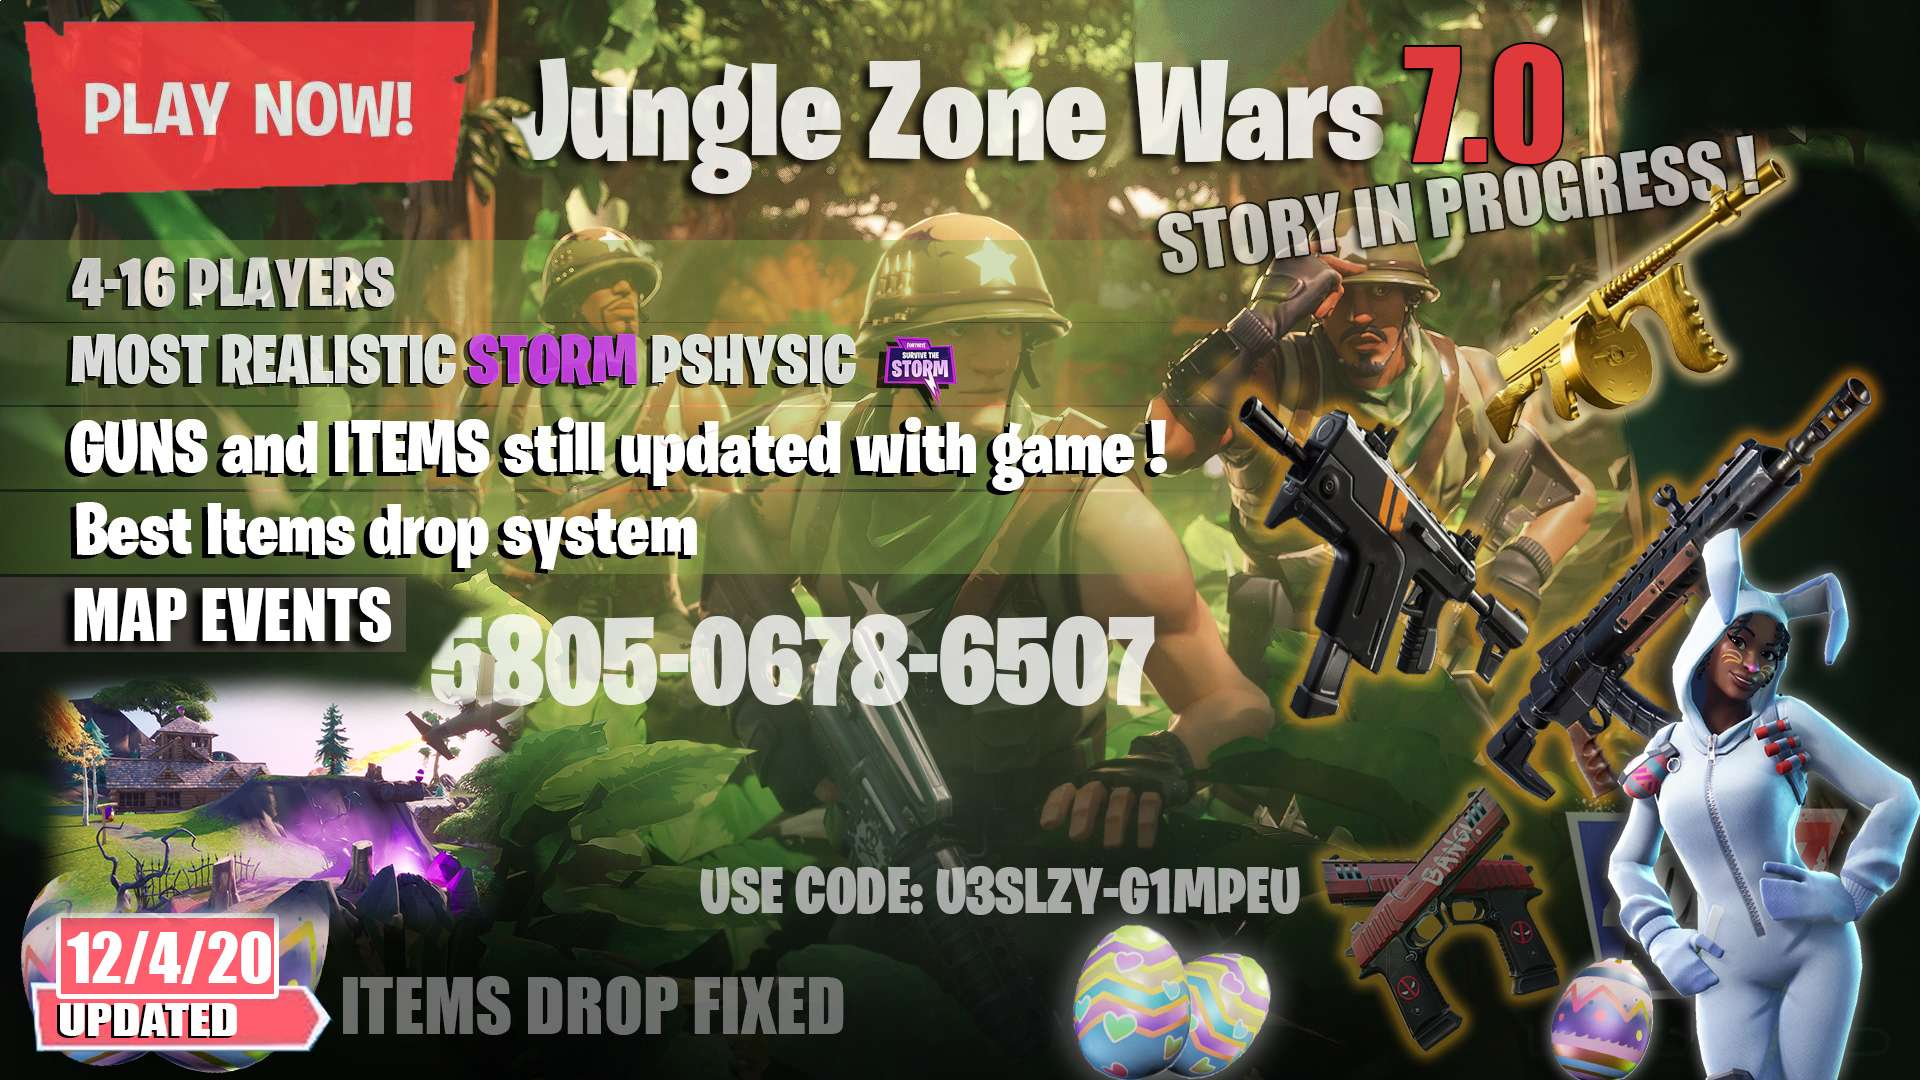 JUNGLE ZONE WARS 7.0